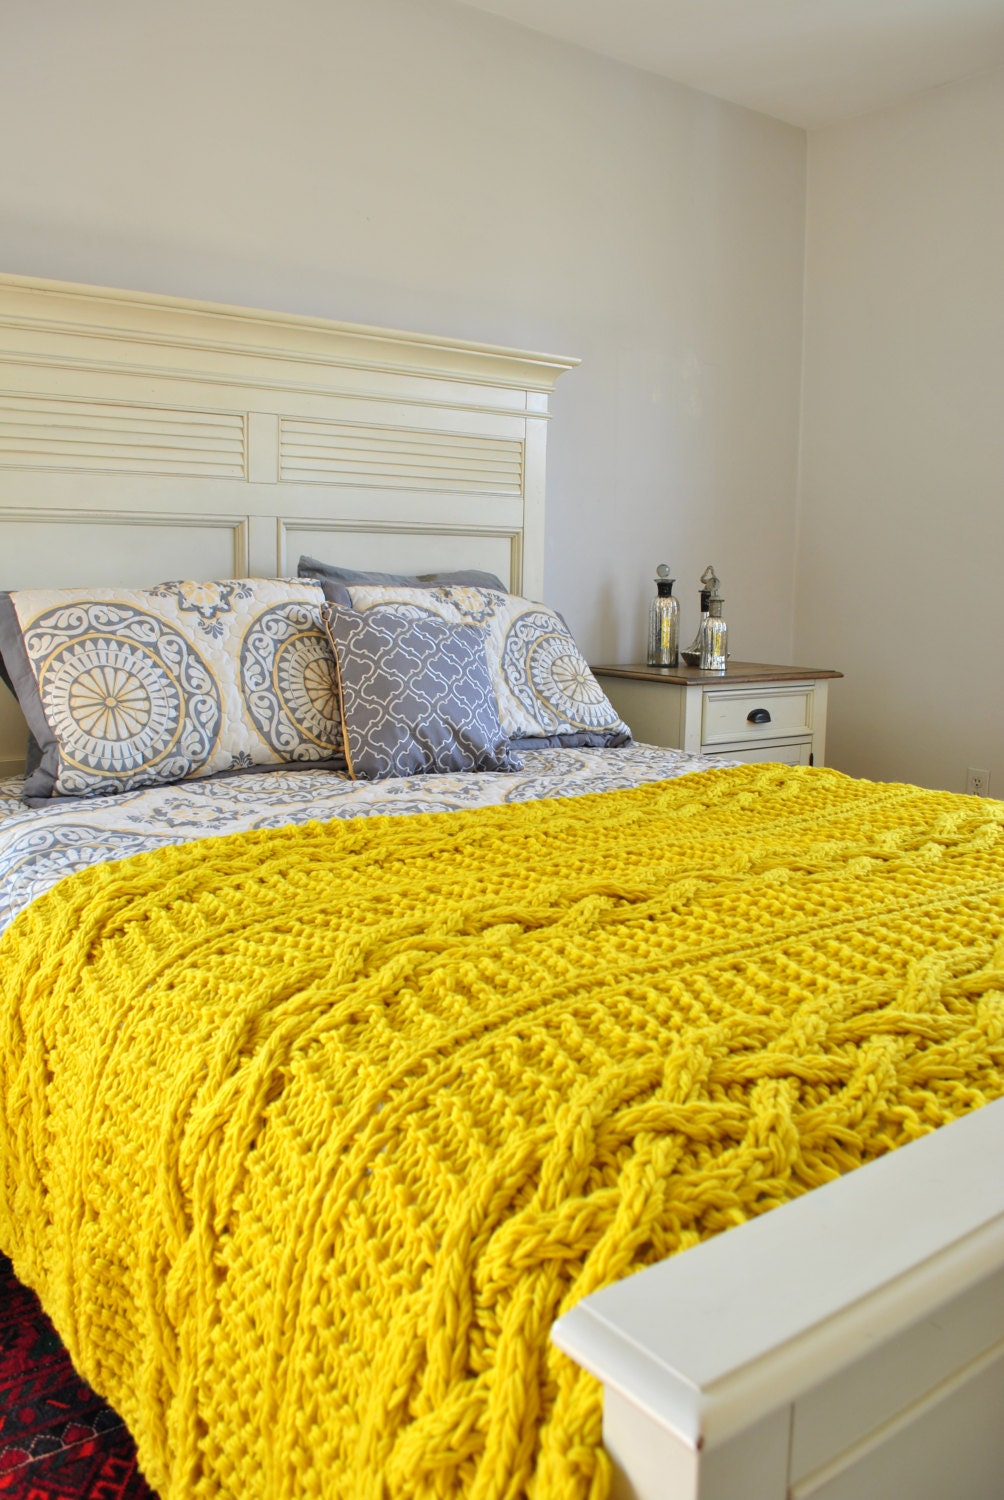 Chunky Cable Knit Throw Blanket In Yellow By Campkitschyknits